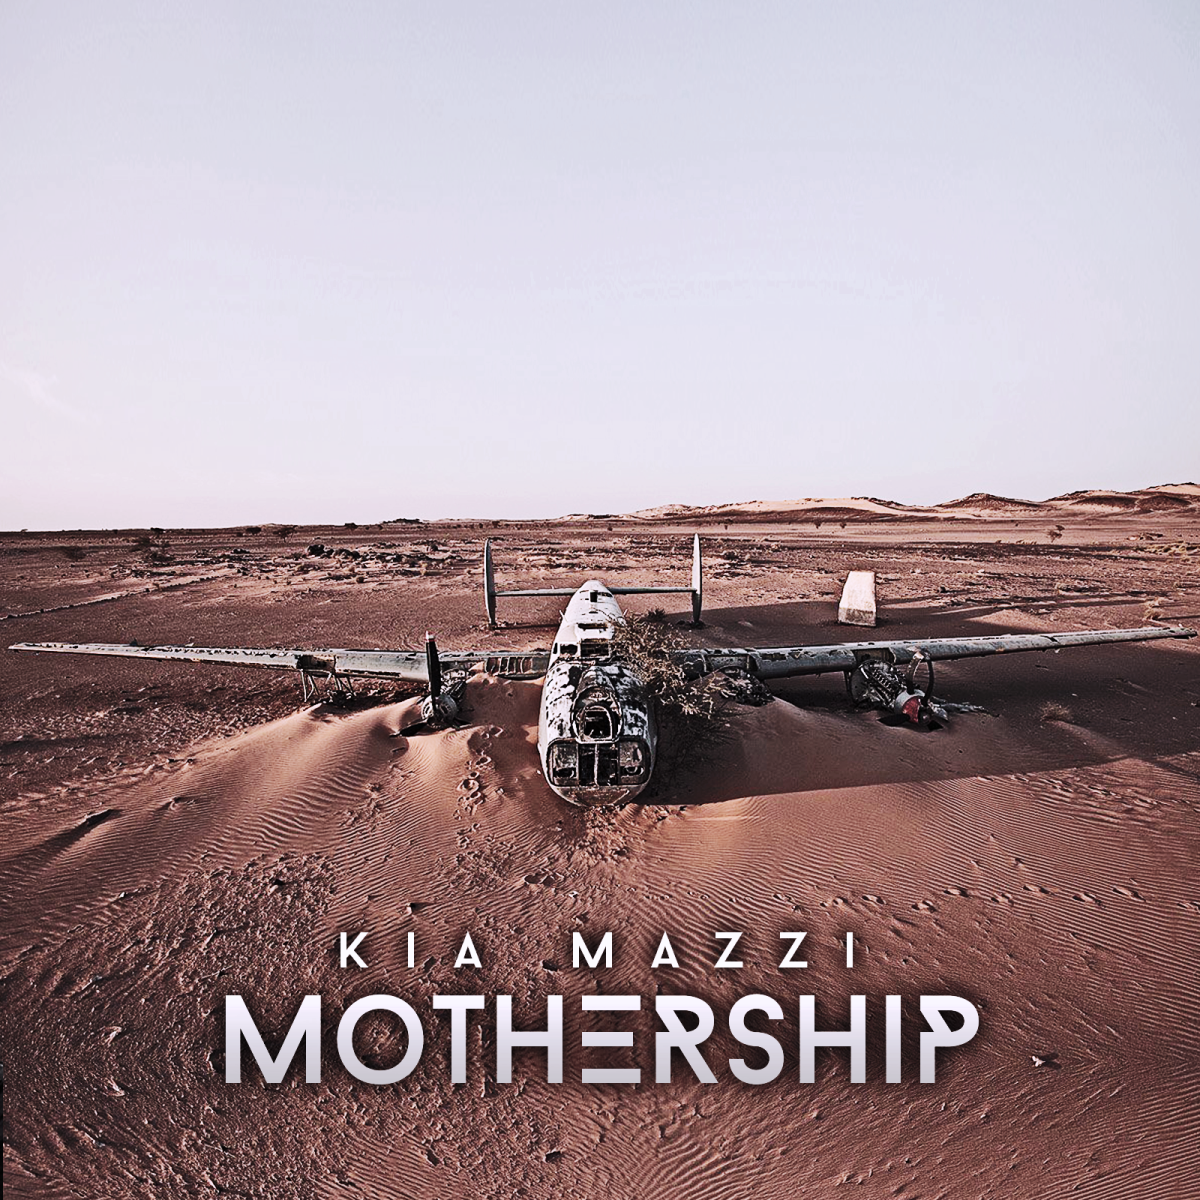 mothershipfinal